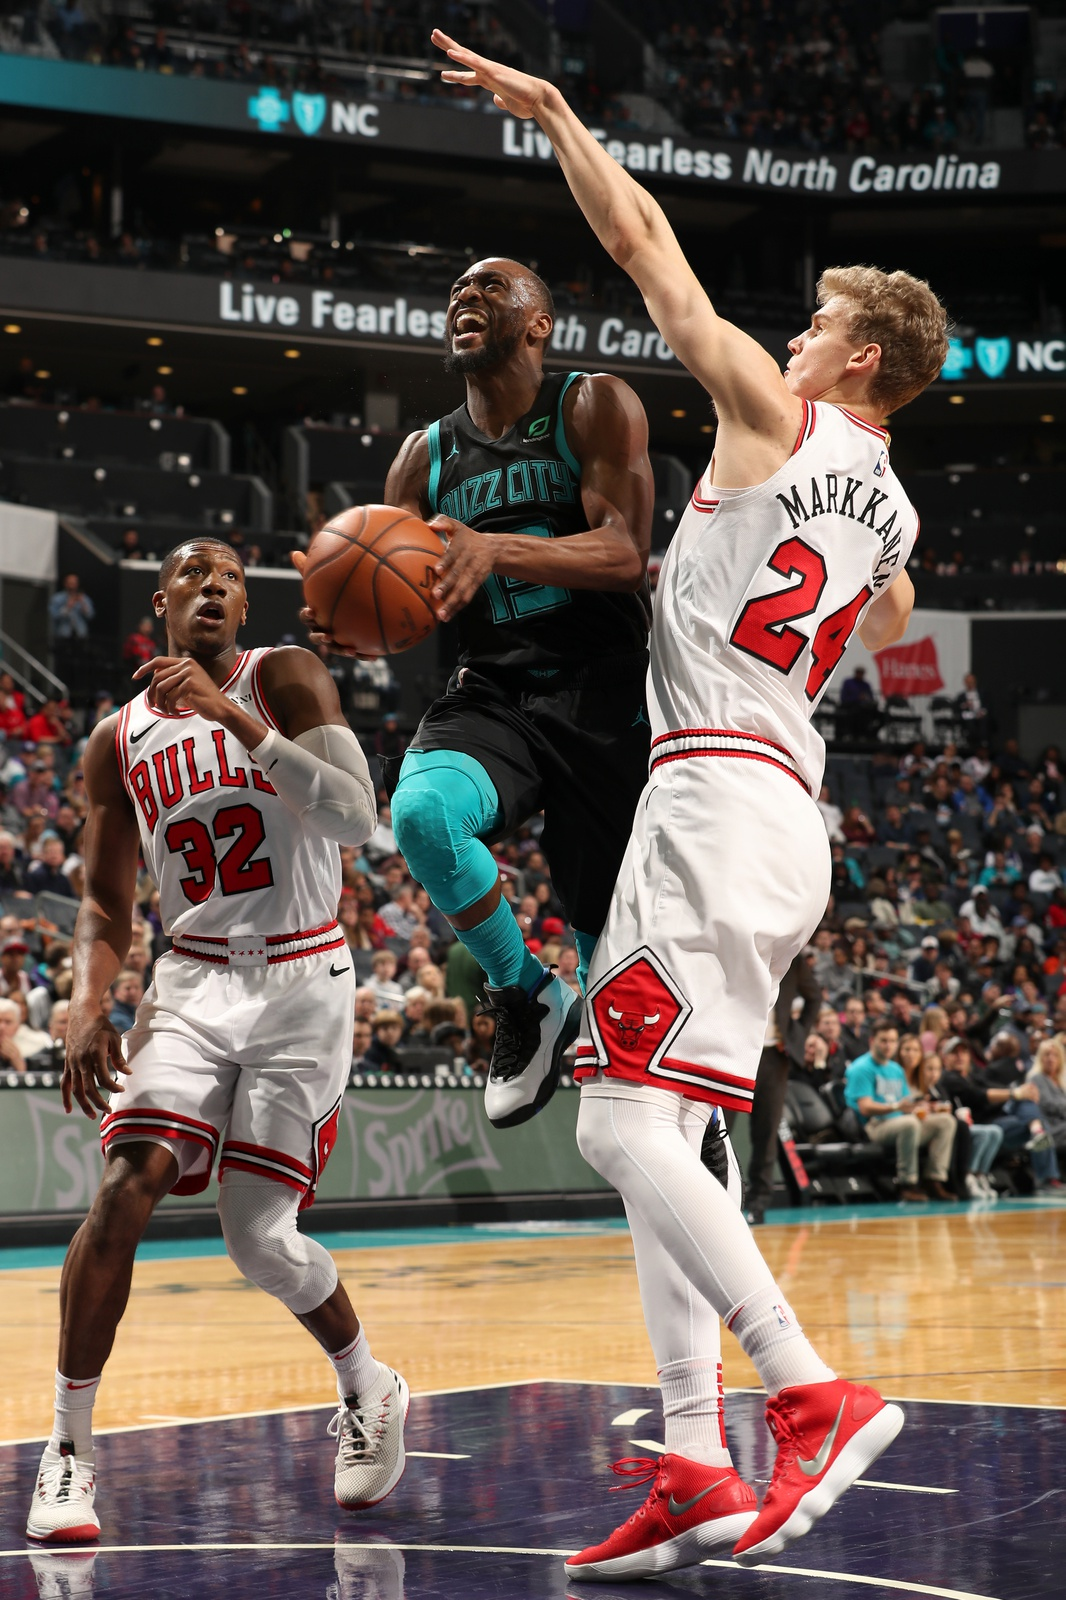 Kemba Walker #15 of the Charlotte Hornets goes to the basket against the Chicago Bulls on February 2, 2019 at the Spectrum Center in Charlotte, North Carolina.